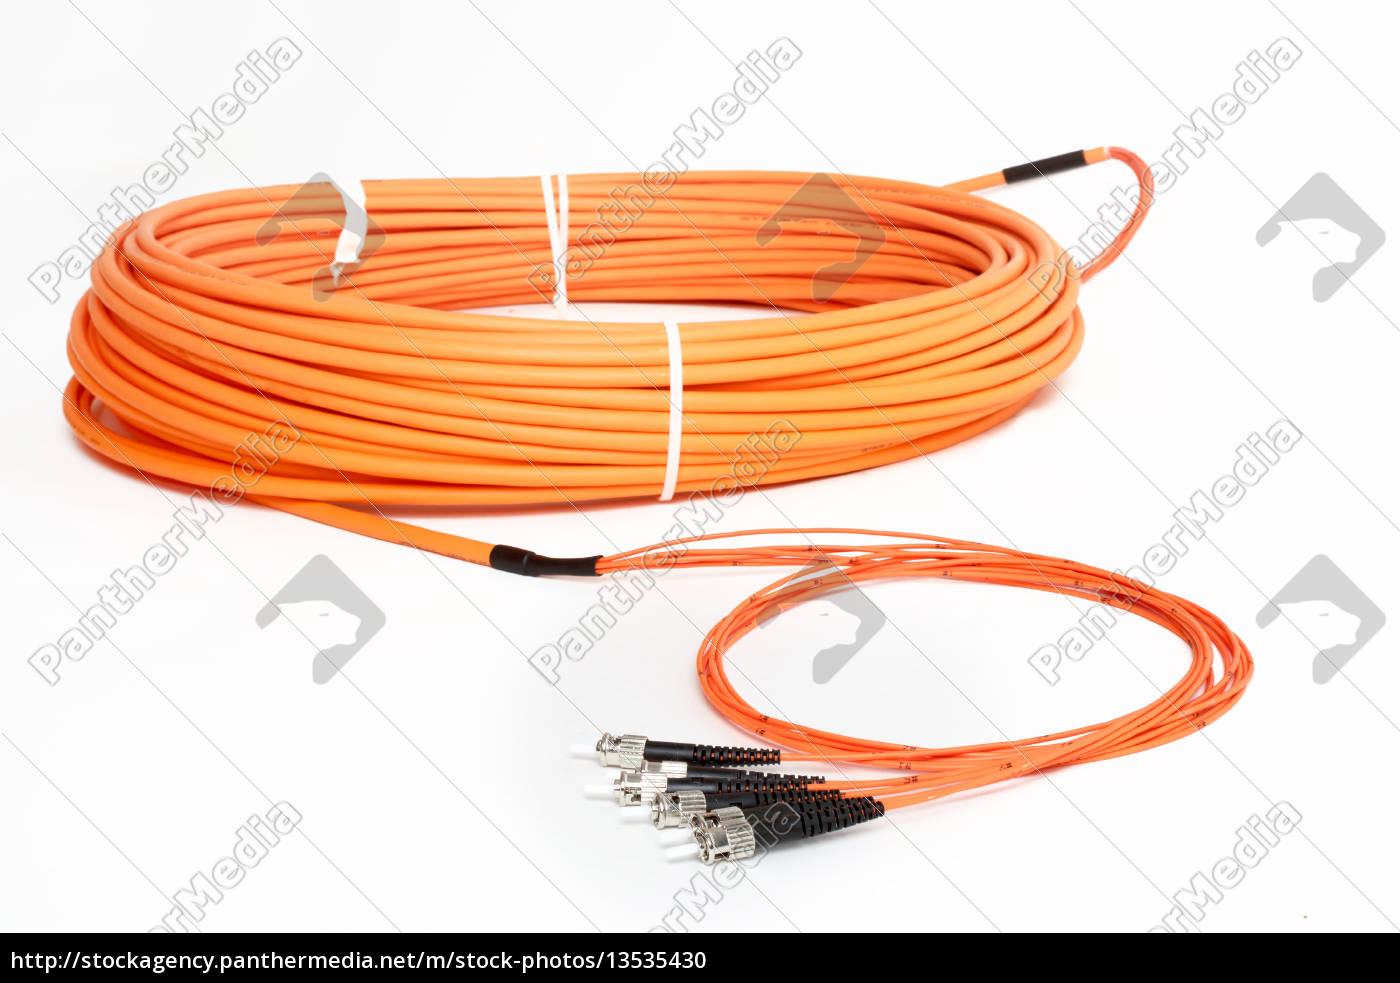 orange, fiber, optic, st, connector, patchcord - 13535430